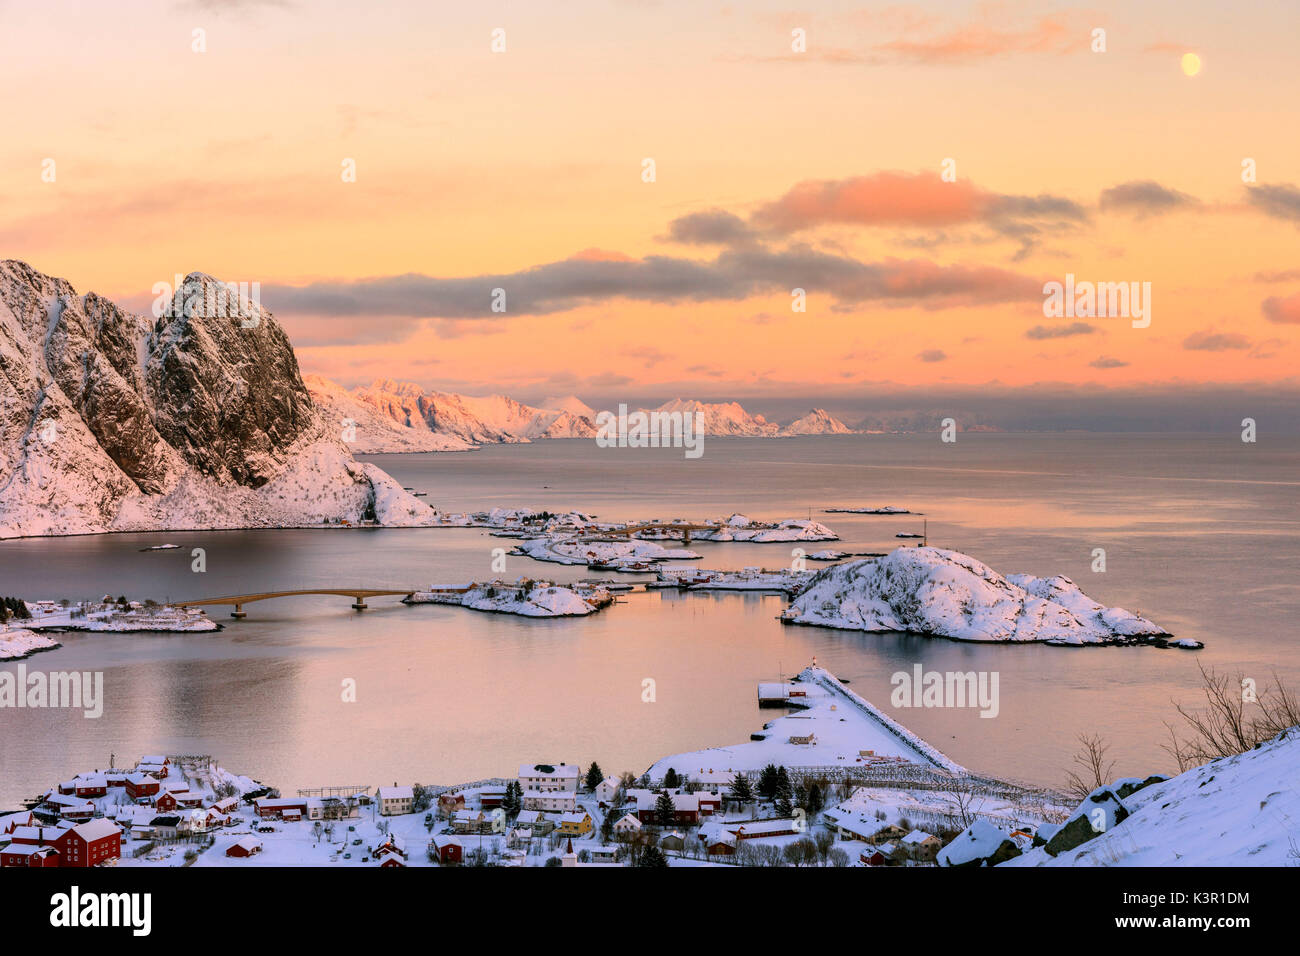 The pink colors of sunset and snowy peaks surround the fishing villages Reine Nordland Lofoten Islands Norway Europe - Stock Image